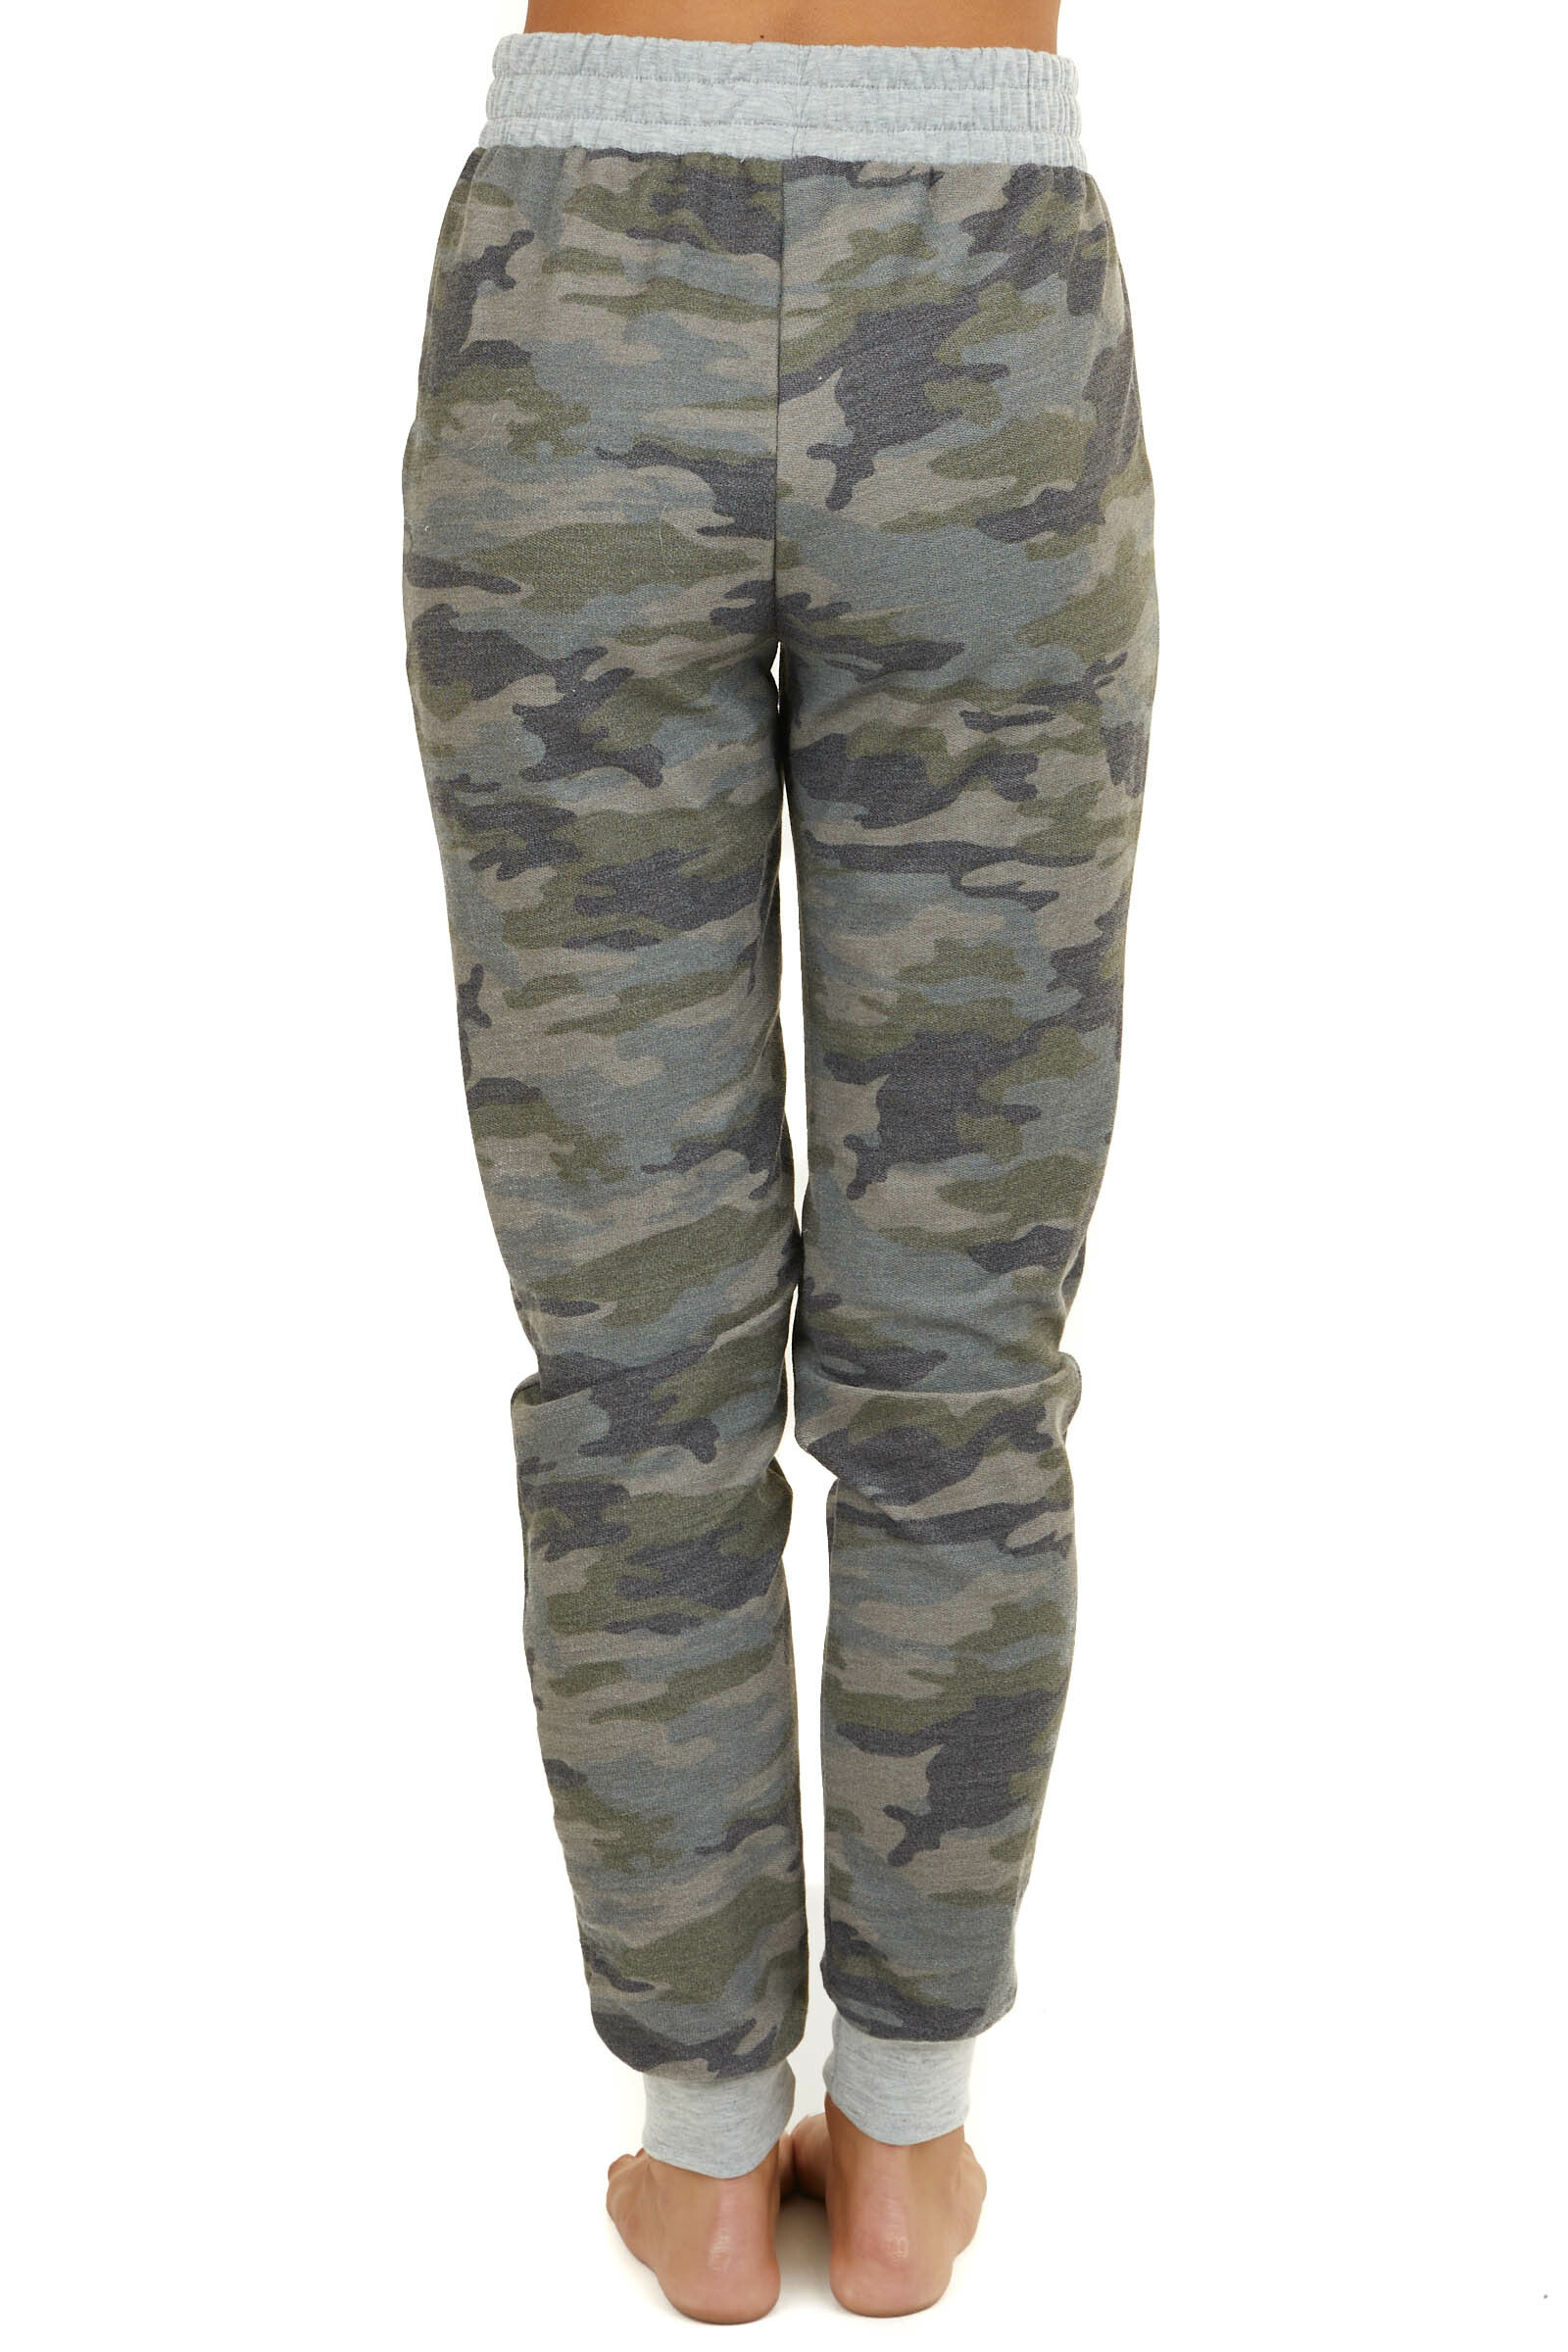 Army Green Camo Print Jogger Sweatpants with Pockets and Tie